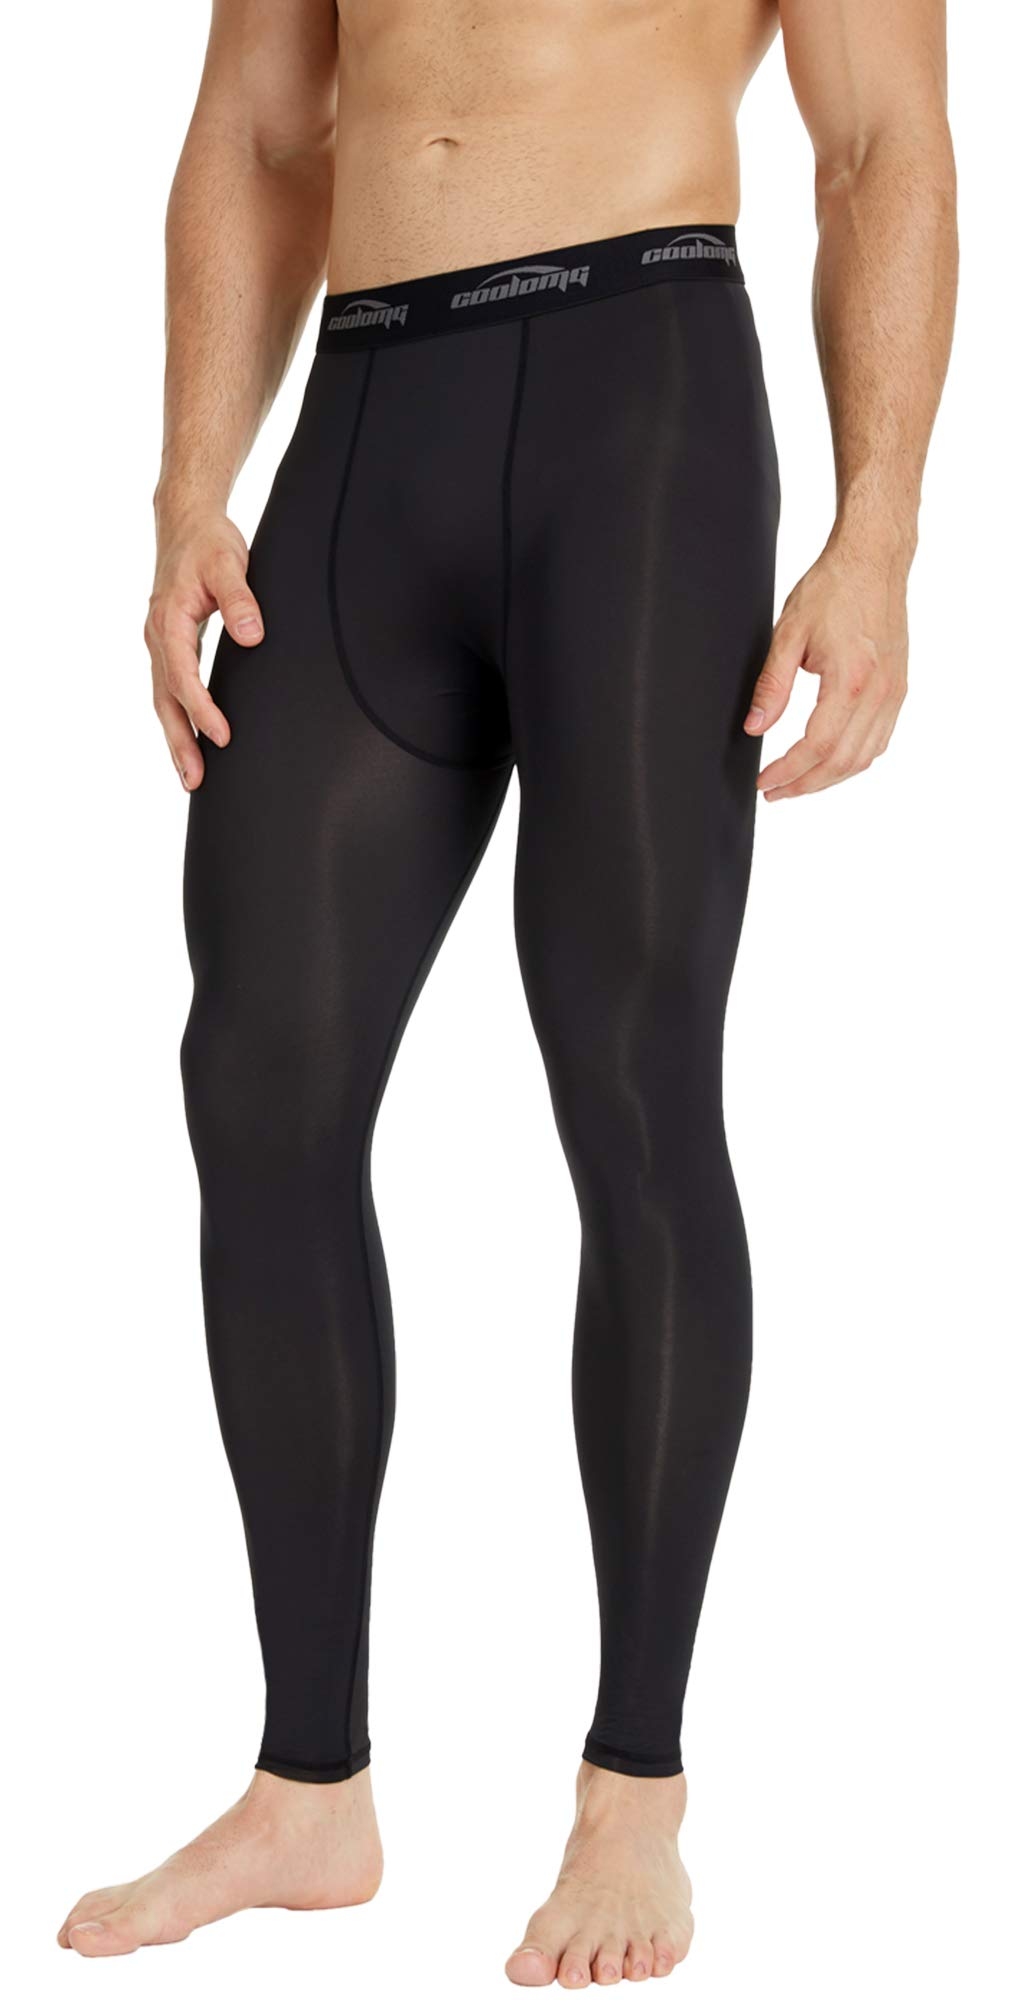 1341e3a16f28b COOLOMG Men's Compression Pants Running Sports Tights Leggings 20  Color/Patterns